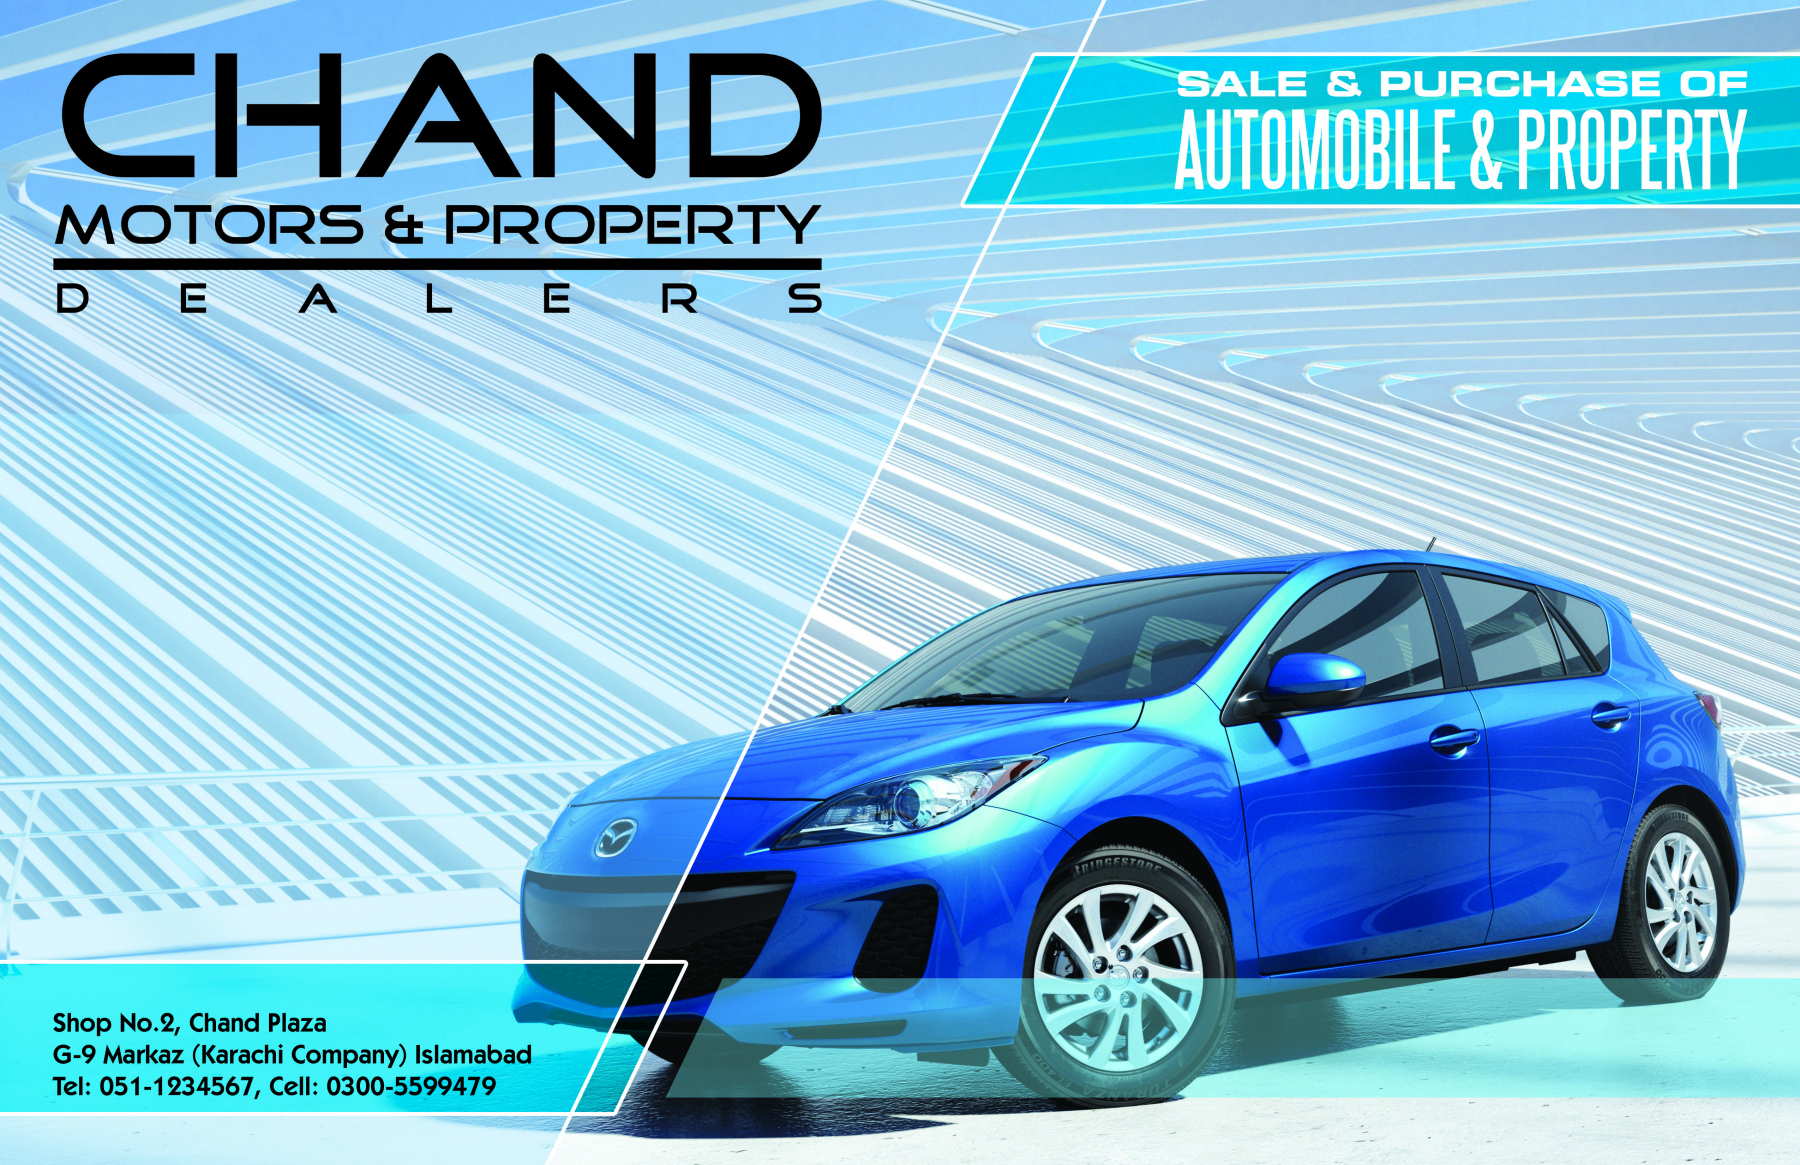 Chand-Motors-Property-Dealers-02-copy